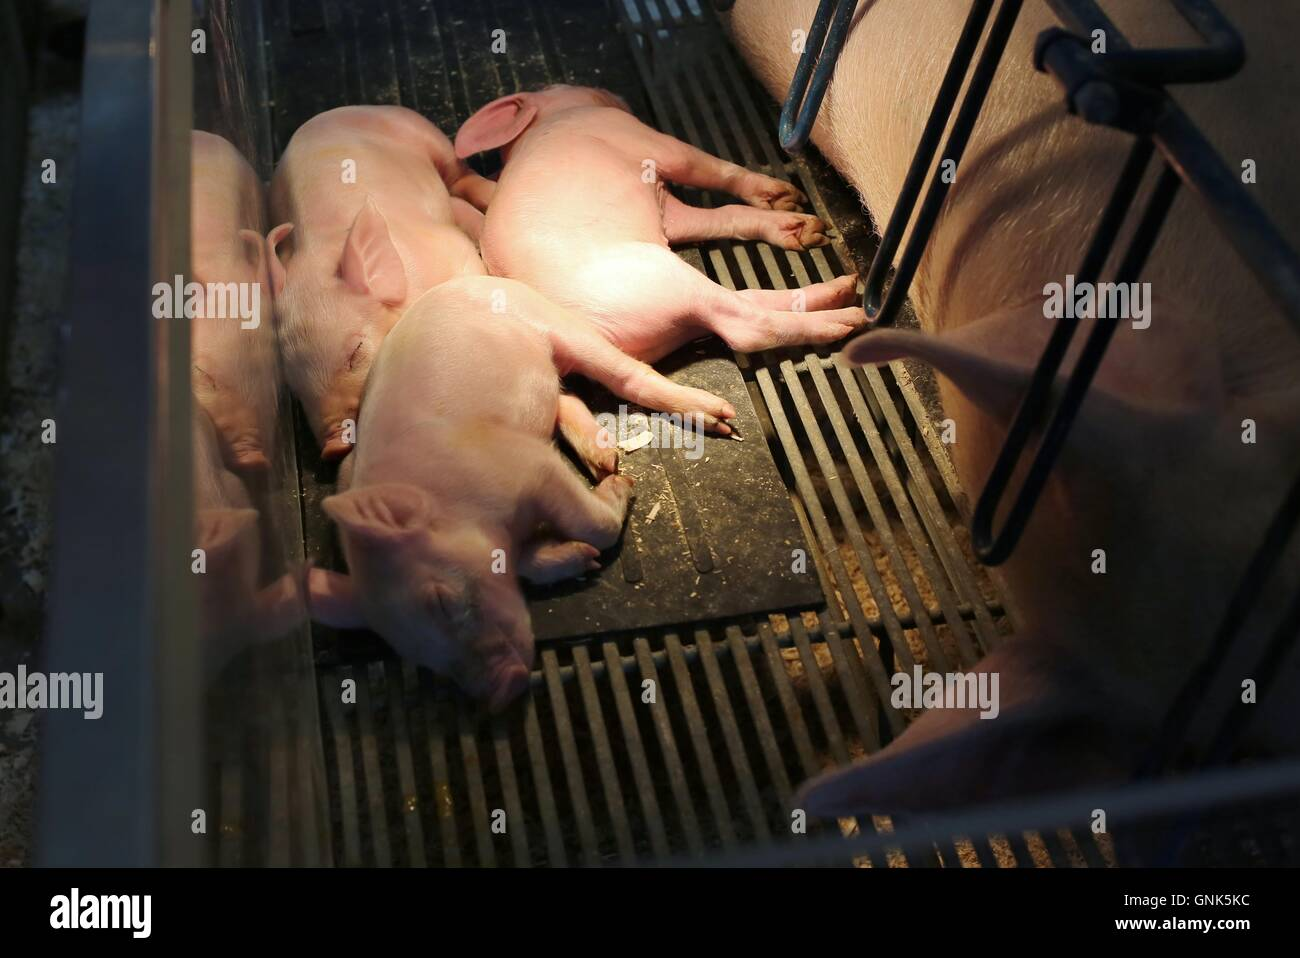 Piglets sleeping near their mother in a gestation crate. - Stock Image